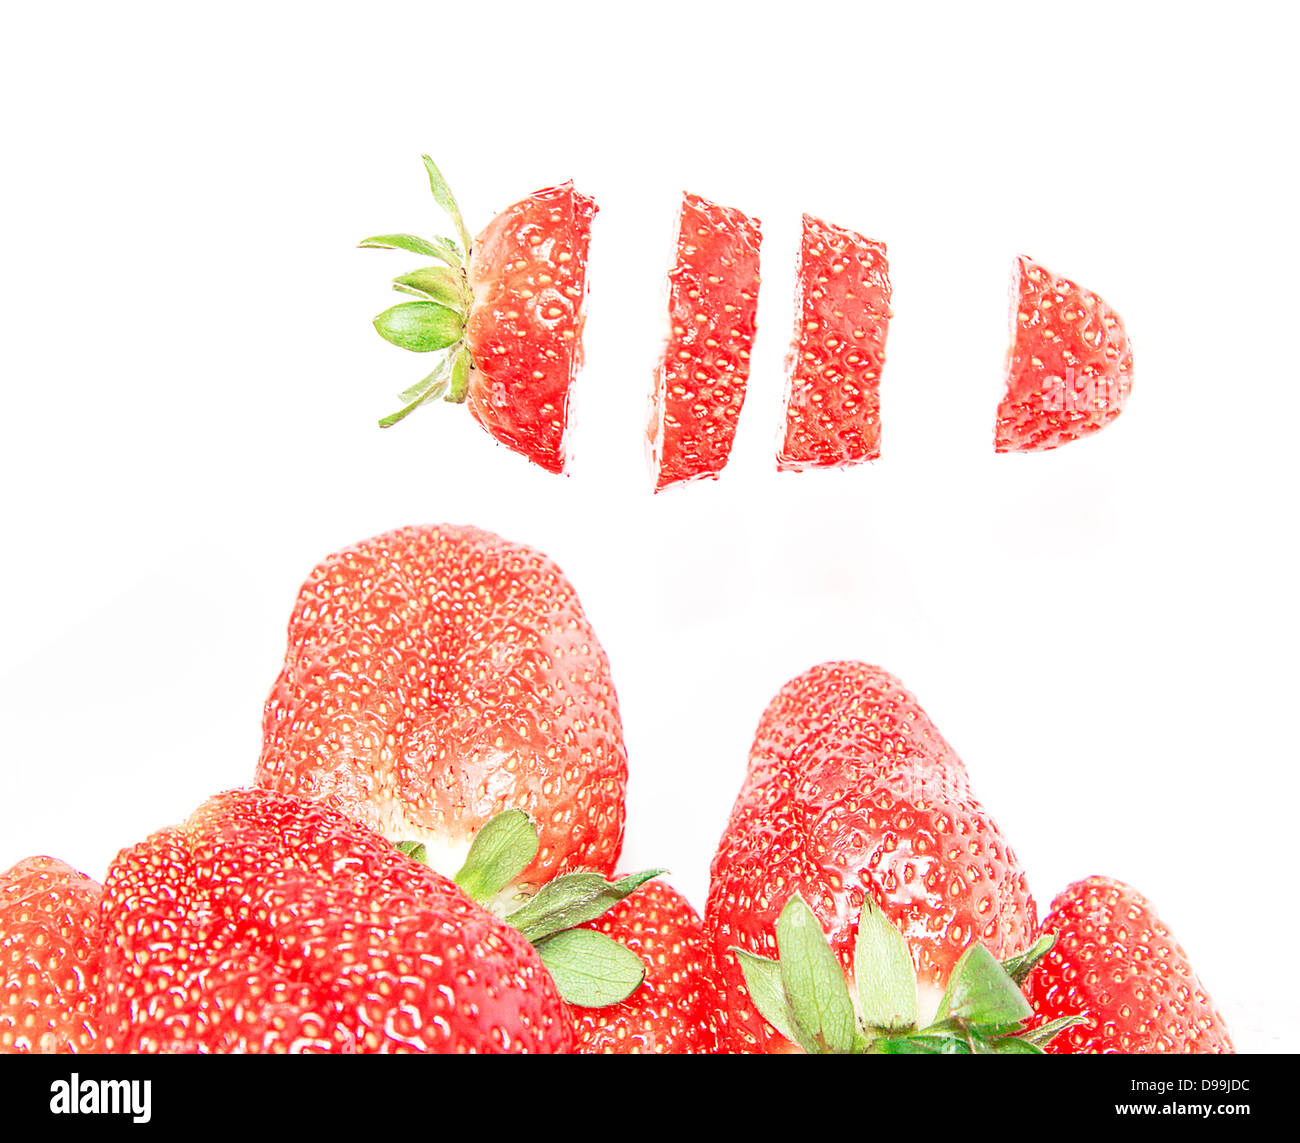 Cut strawberries isolated on white background Stock Photo